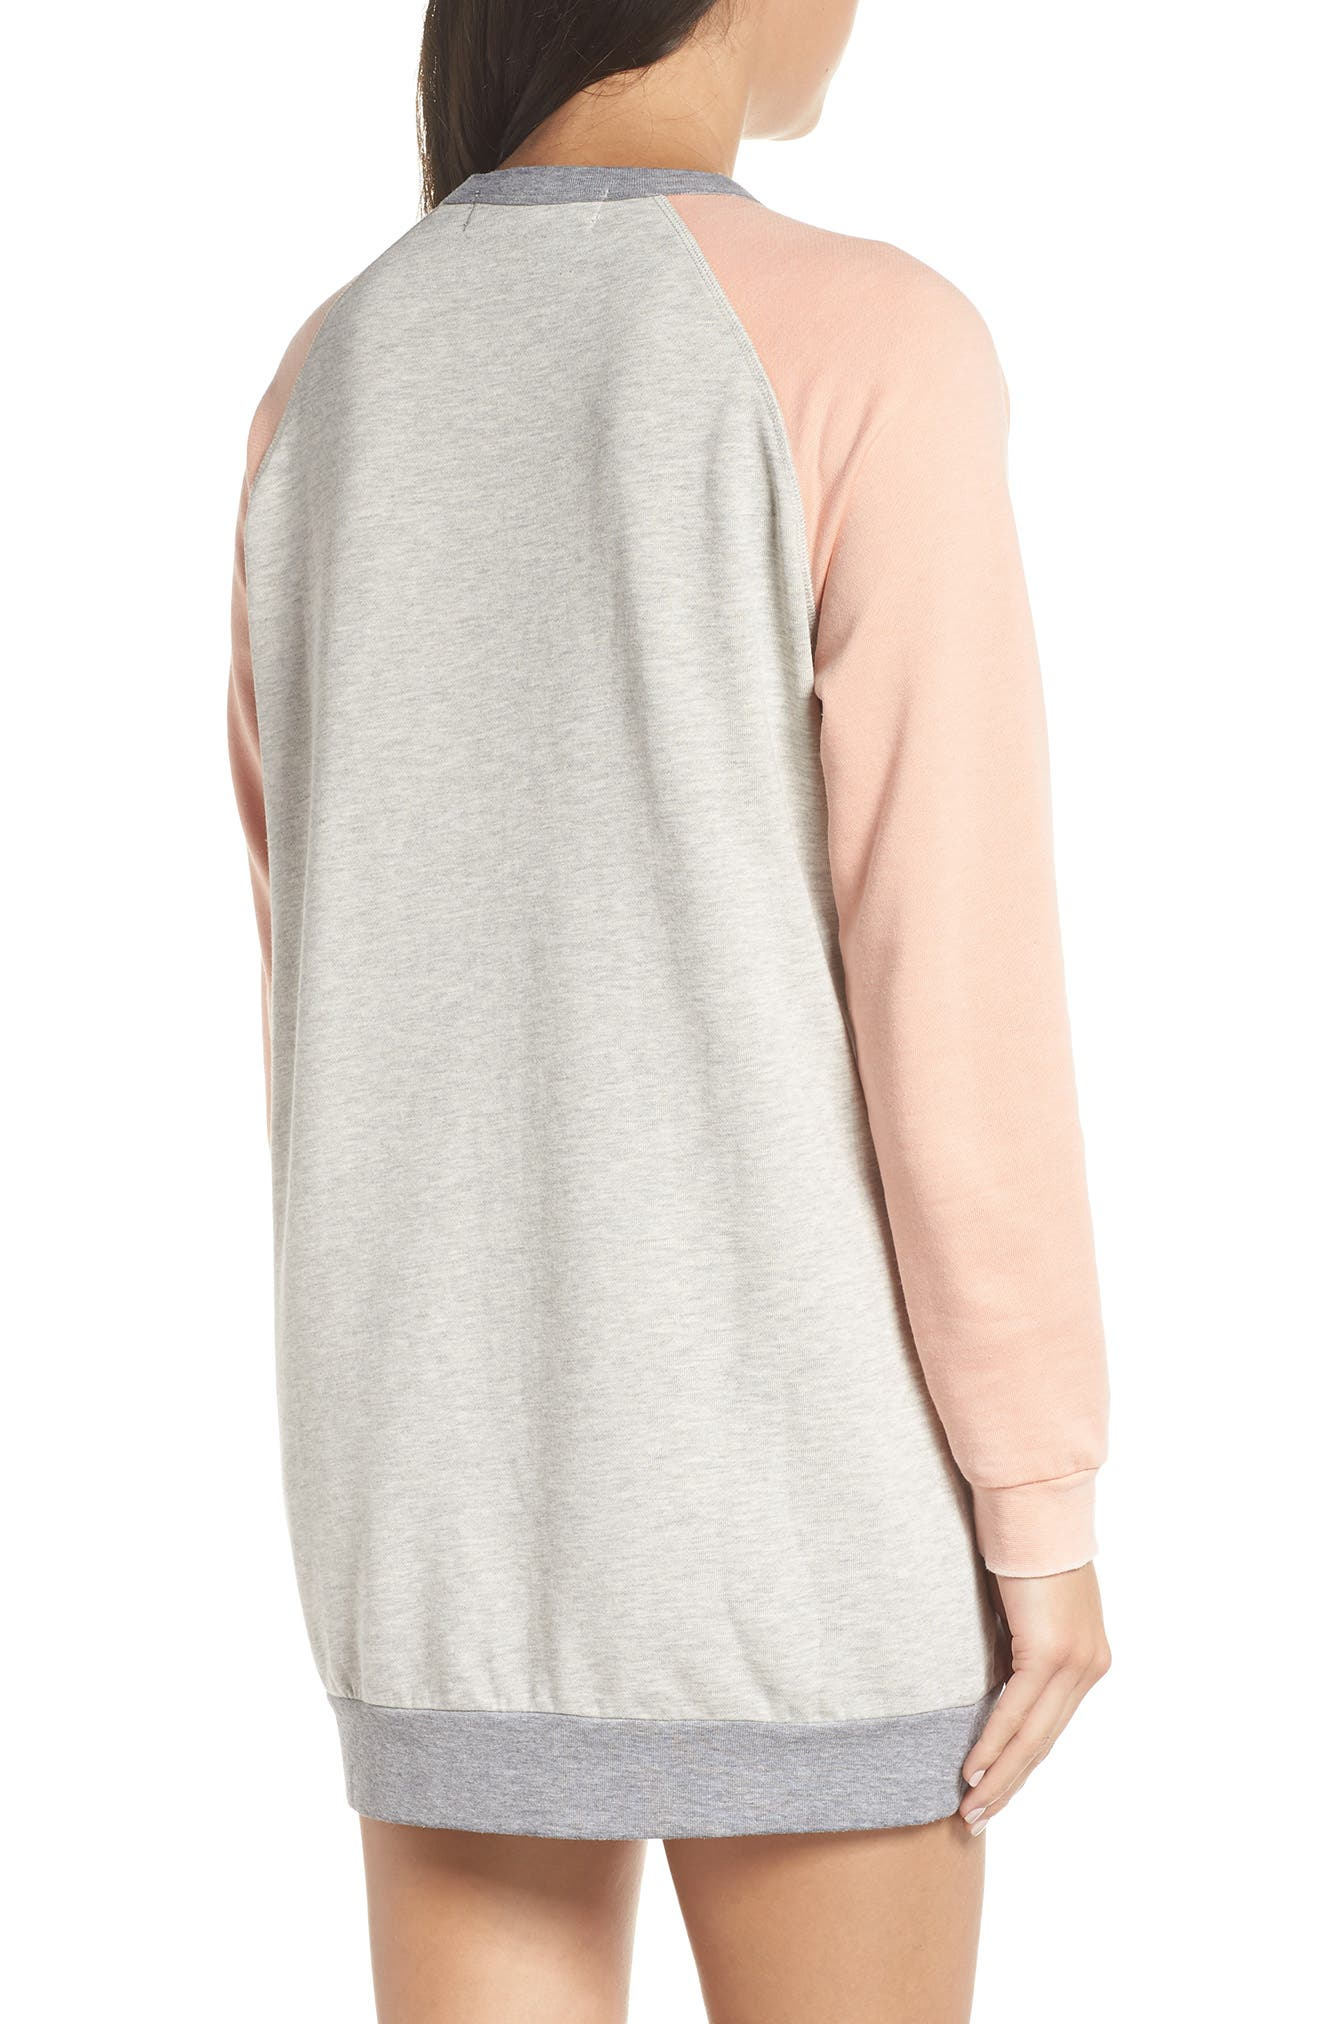 Lounge Sweatshirt Dress,                             Alternate thumbnail 2, color,                             PEBBLE HEATHER / PEACH